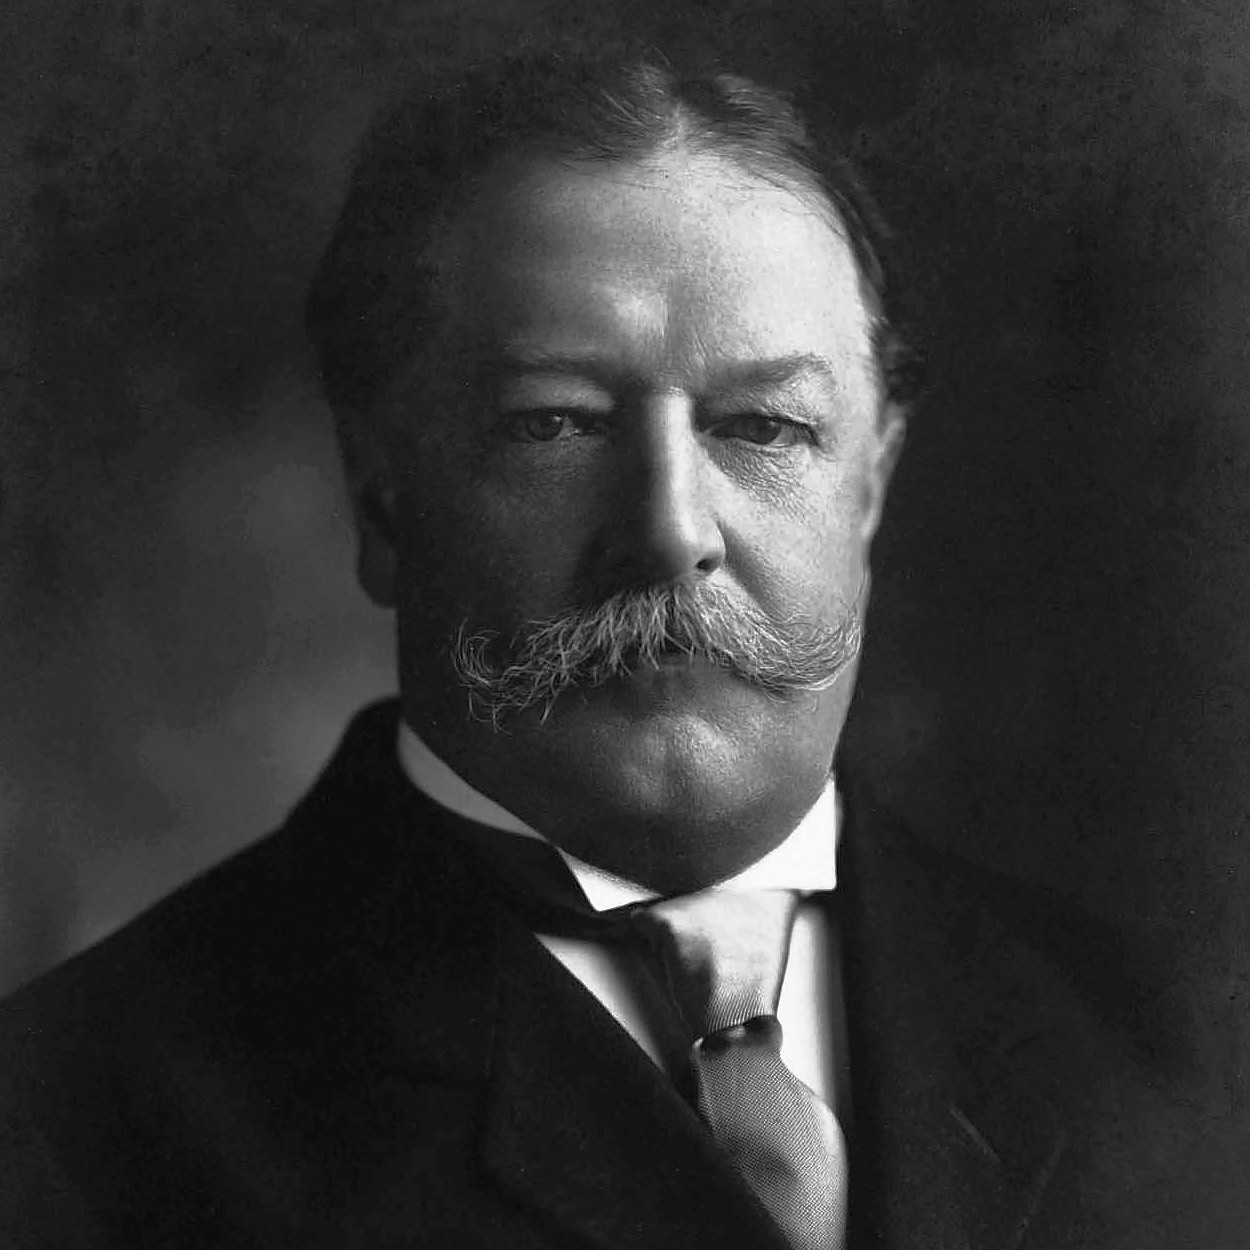 Portrait of William Howard Taft, the 27th President of the United States